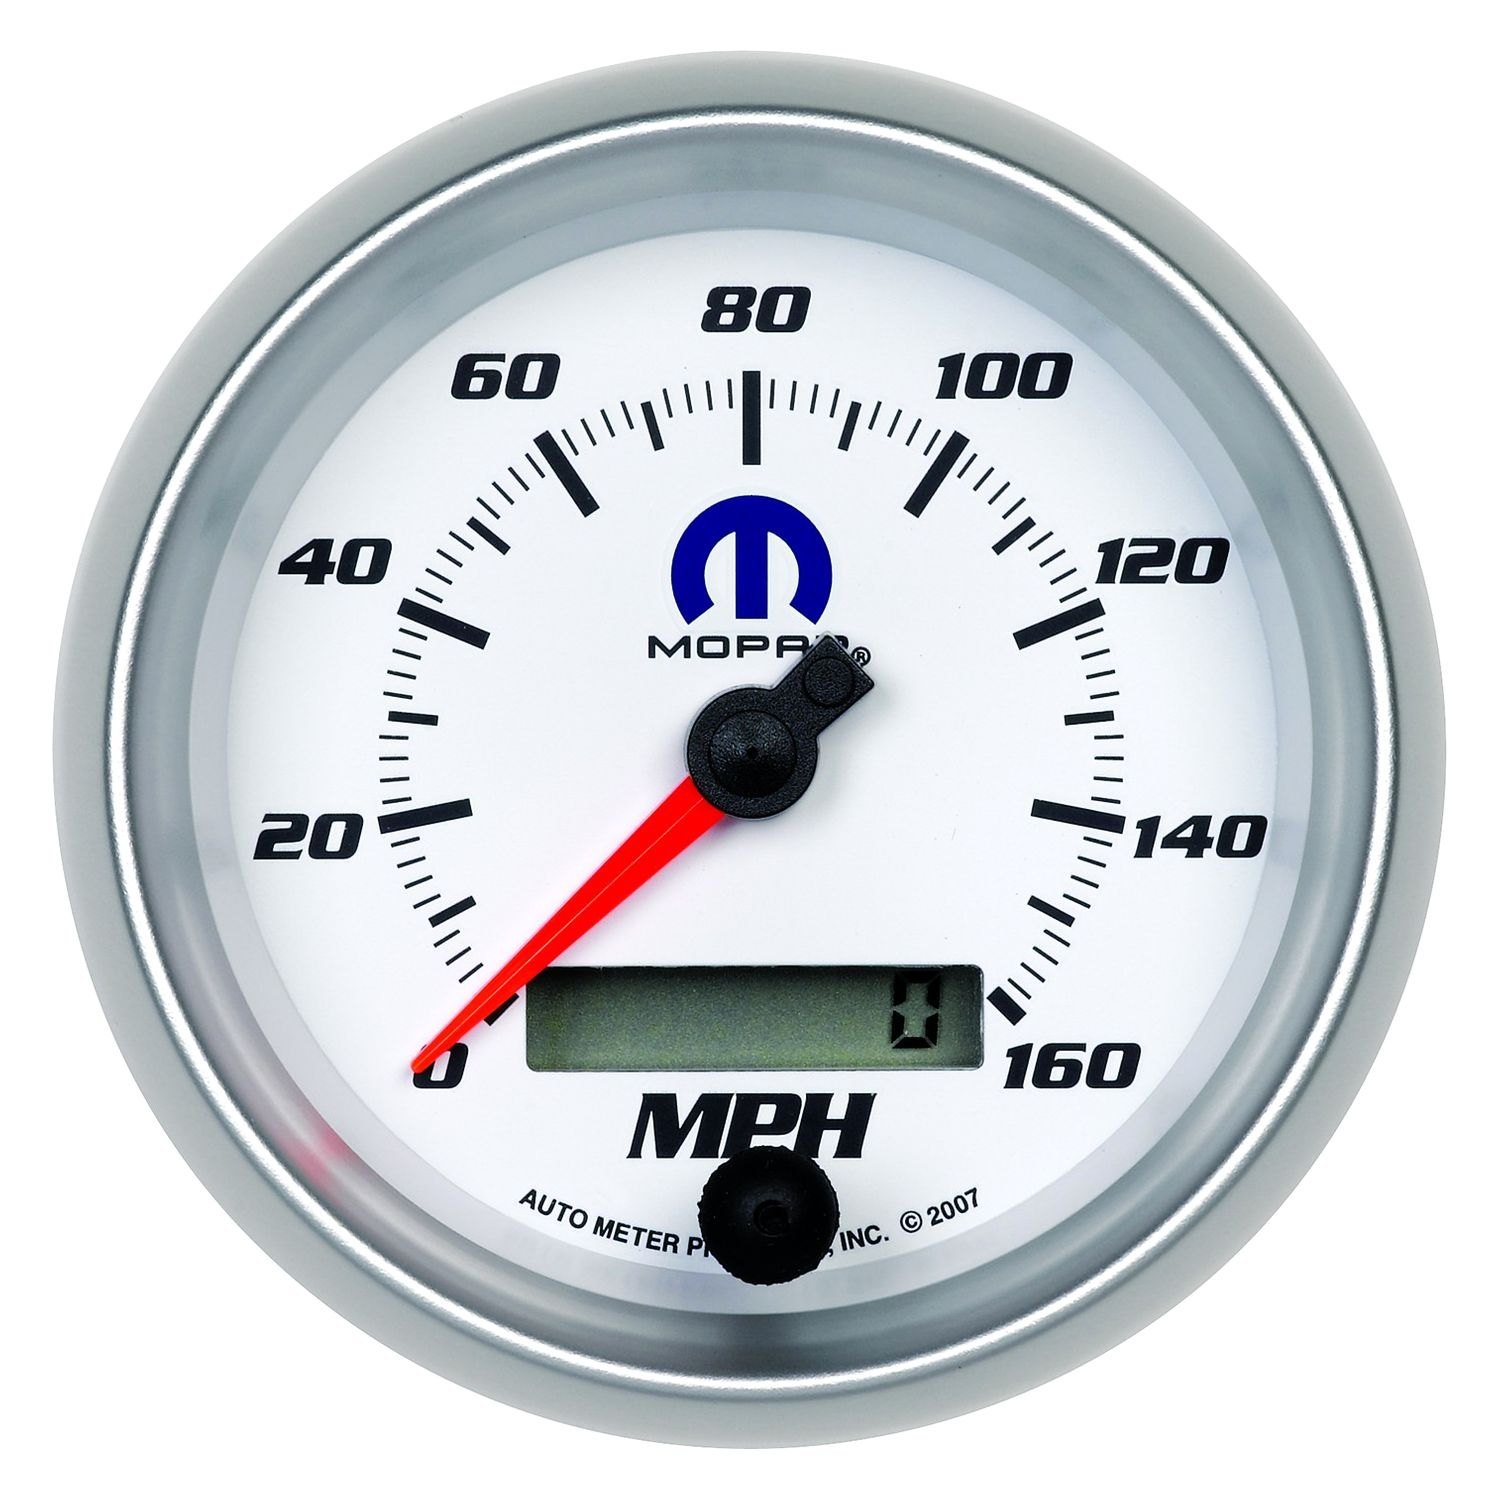 Auto Meter Electronic Speedometers : Auto meter  mopar™ speedometer in dash gauge